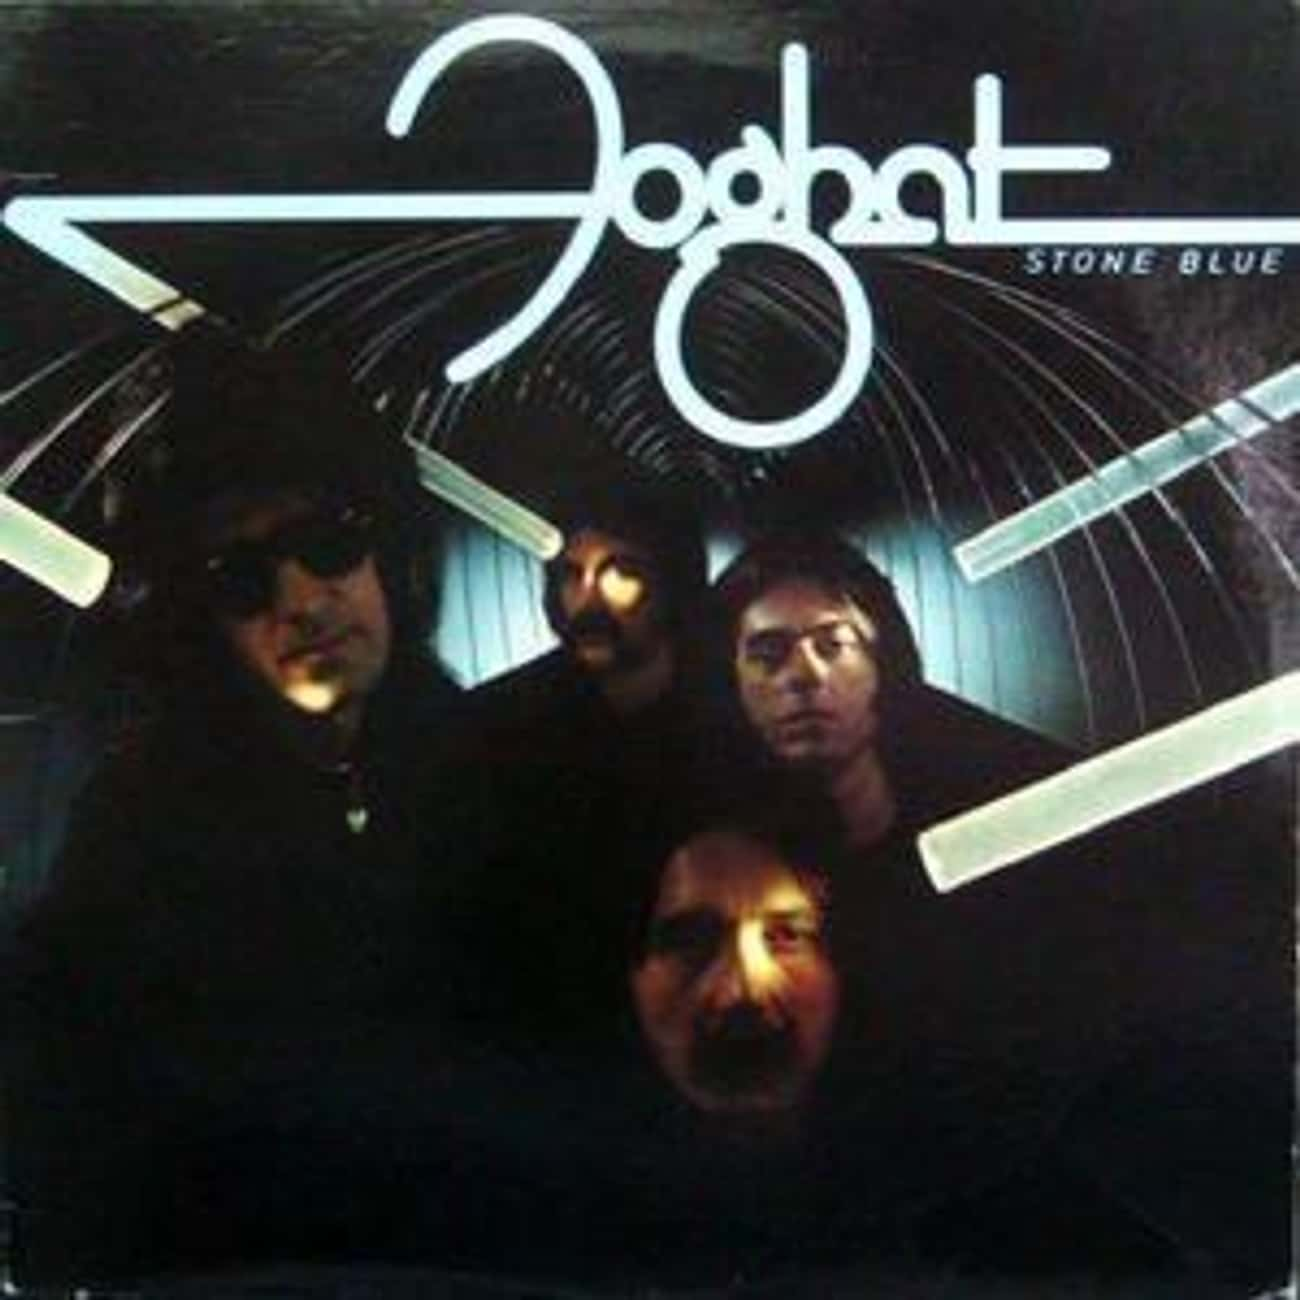 Stone Blue is listed (or ranked) 3 on the list The Best Foghat Albums of All Time